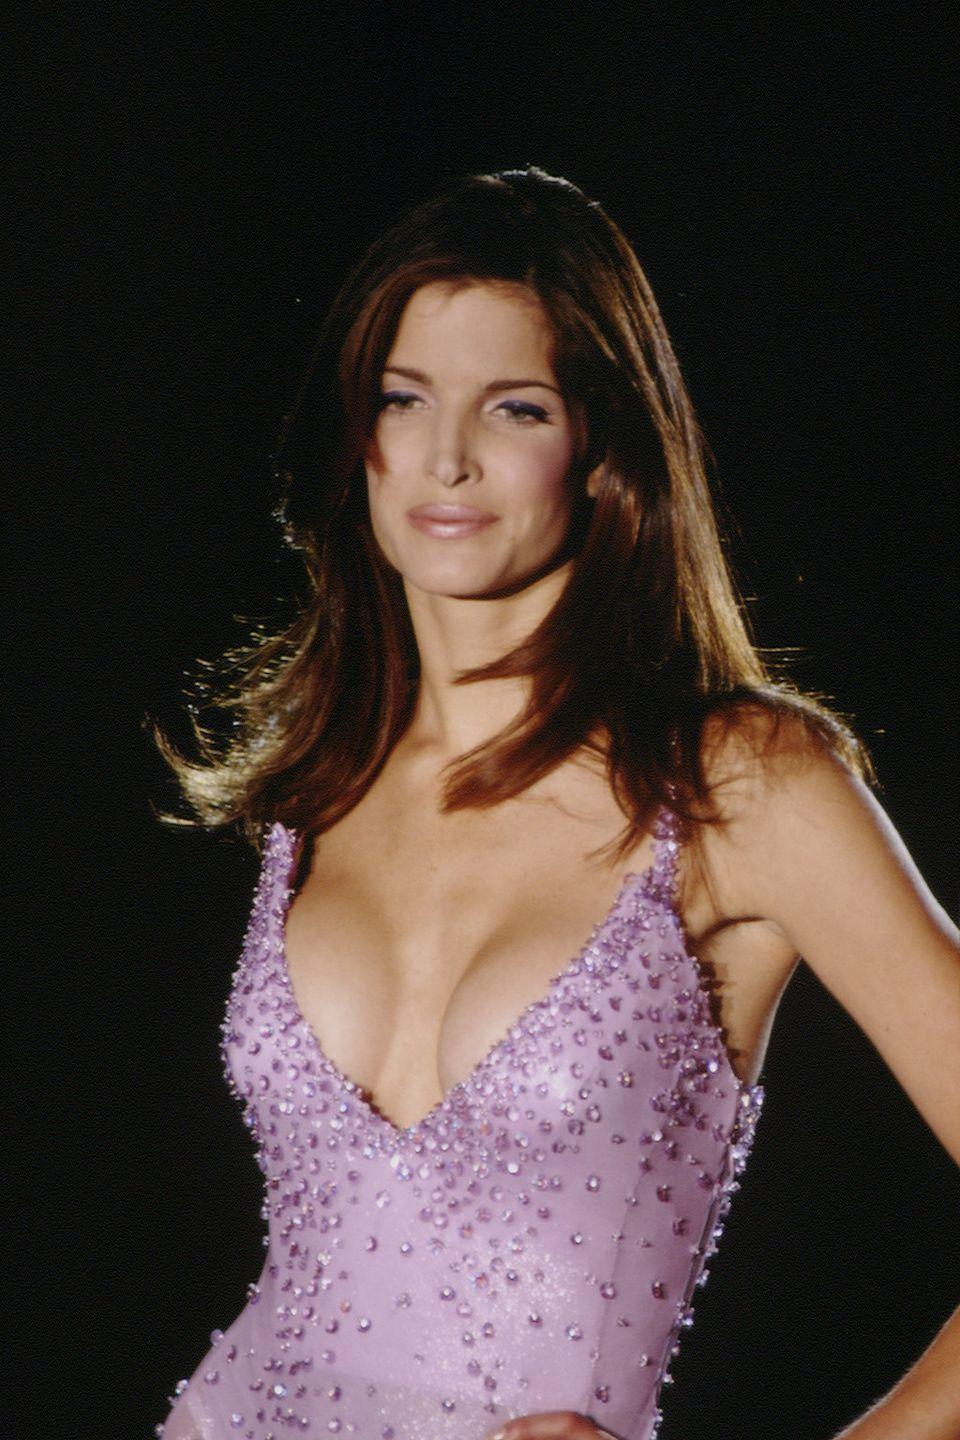 """<p>From covers of <em>Harper's BAZAAR</em> to <em>Playboy</em> to the <em>Sports Illustrated Swimsuit Issue</em>, Seymour (perhaps more than most) was celebrated for her amazing figure. Indeed, photographer Richard Avedon said that she had the """"prefect body""""—a distinction that brands like Versace, Alaïa, and Victoria's Secret highlighted in their catwalks and campaigns. And for music fans, the California native is best remembered for starring in Guns N' Roses's video for """"November Rain.""""</p>"""